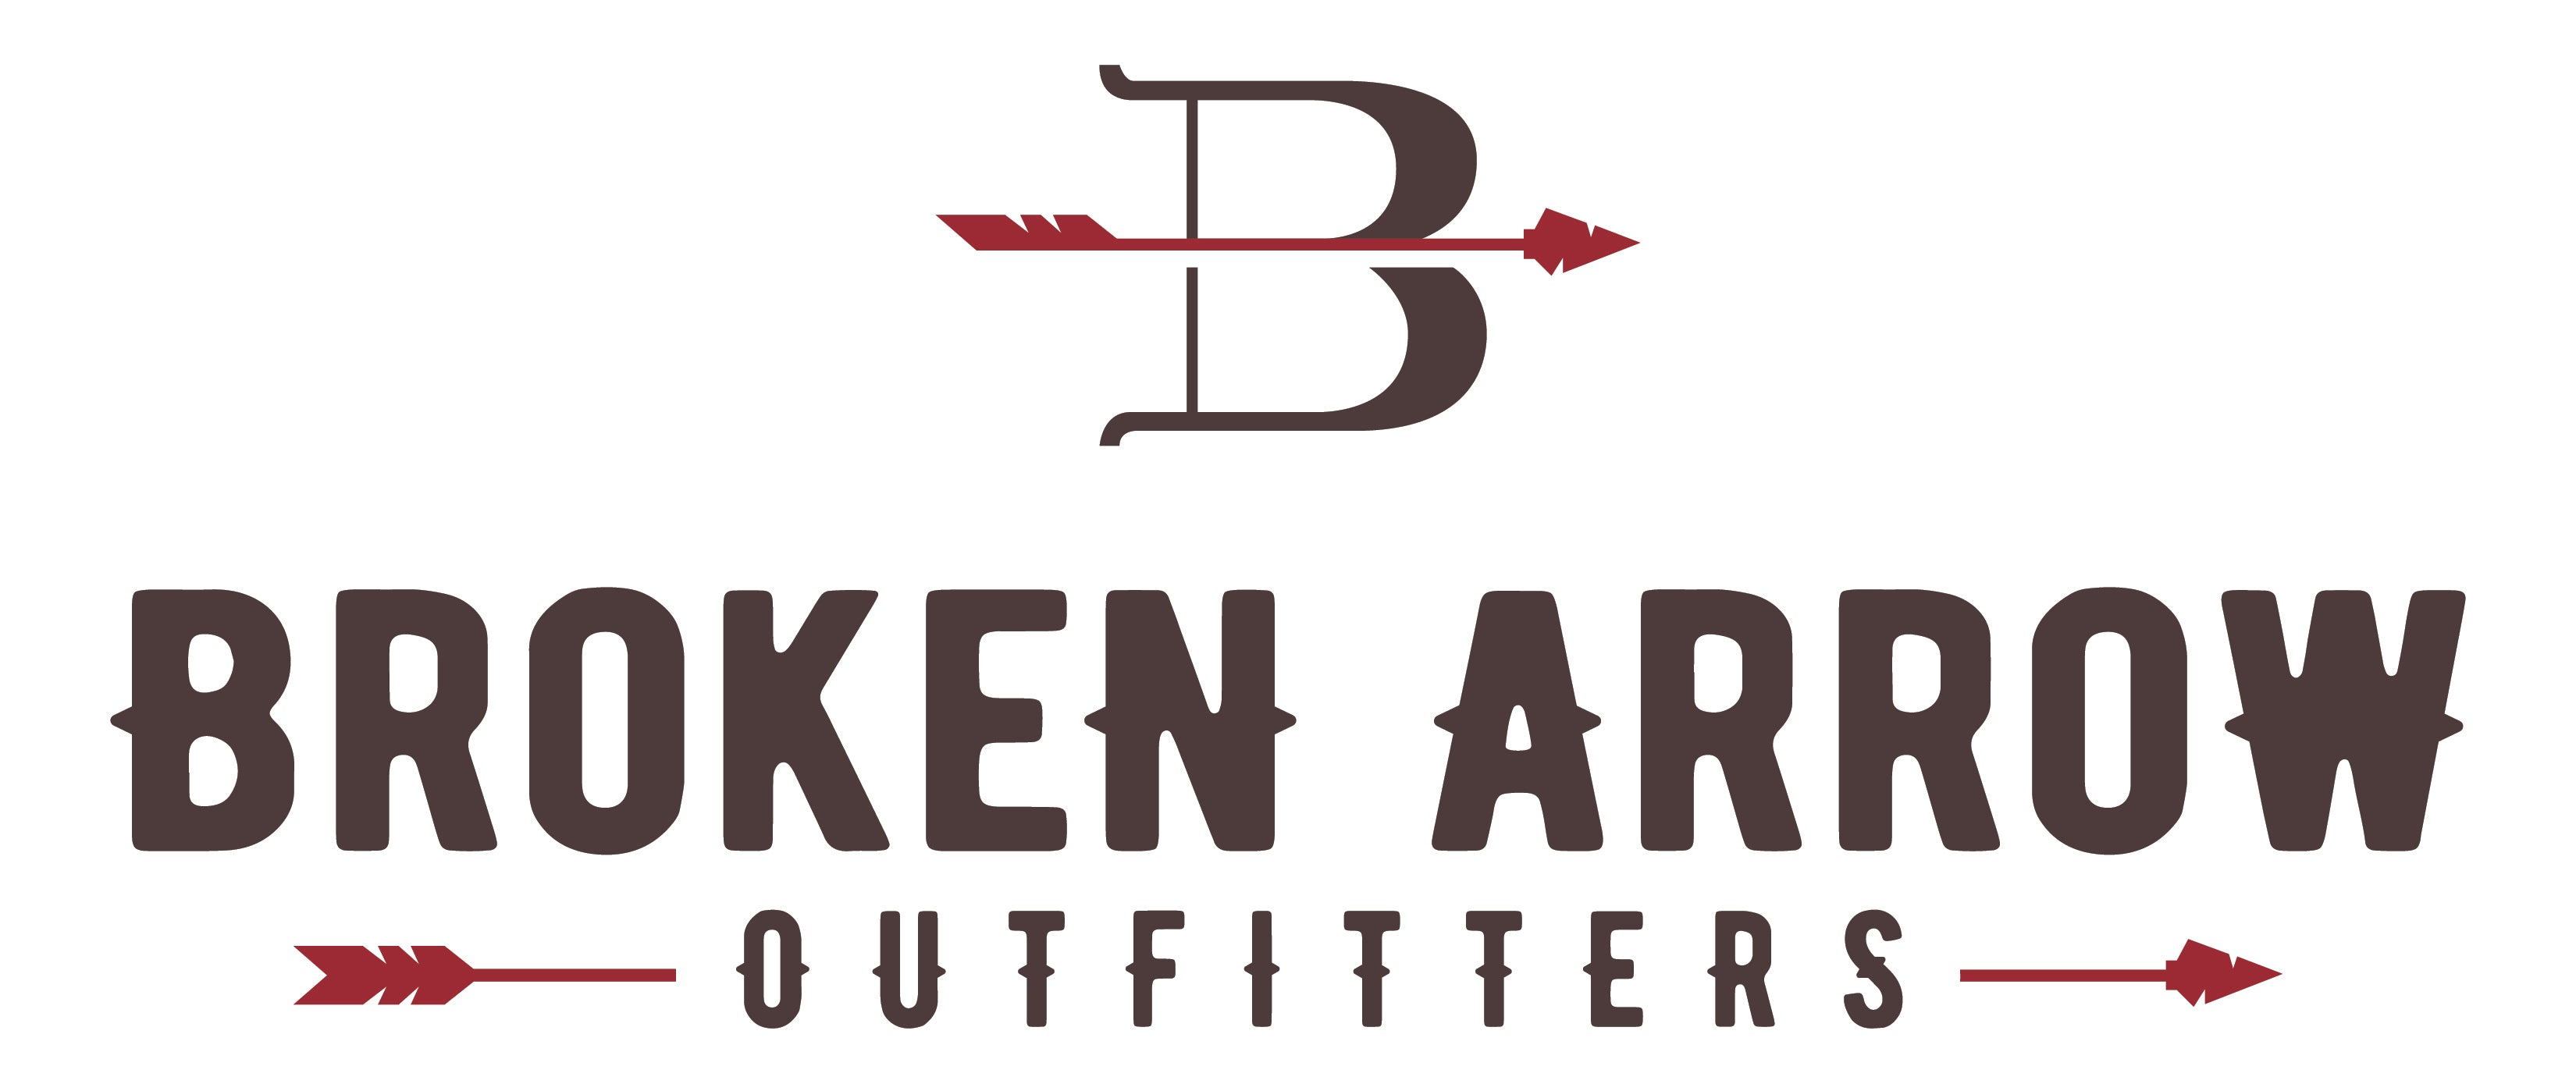 broken arrow outfitters the one stop shop for outdoor families broken arrow outfitters ga broken arrow outfitters the one stop